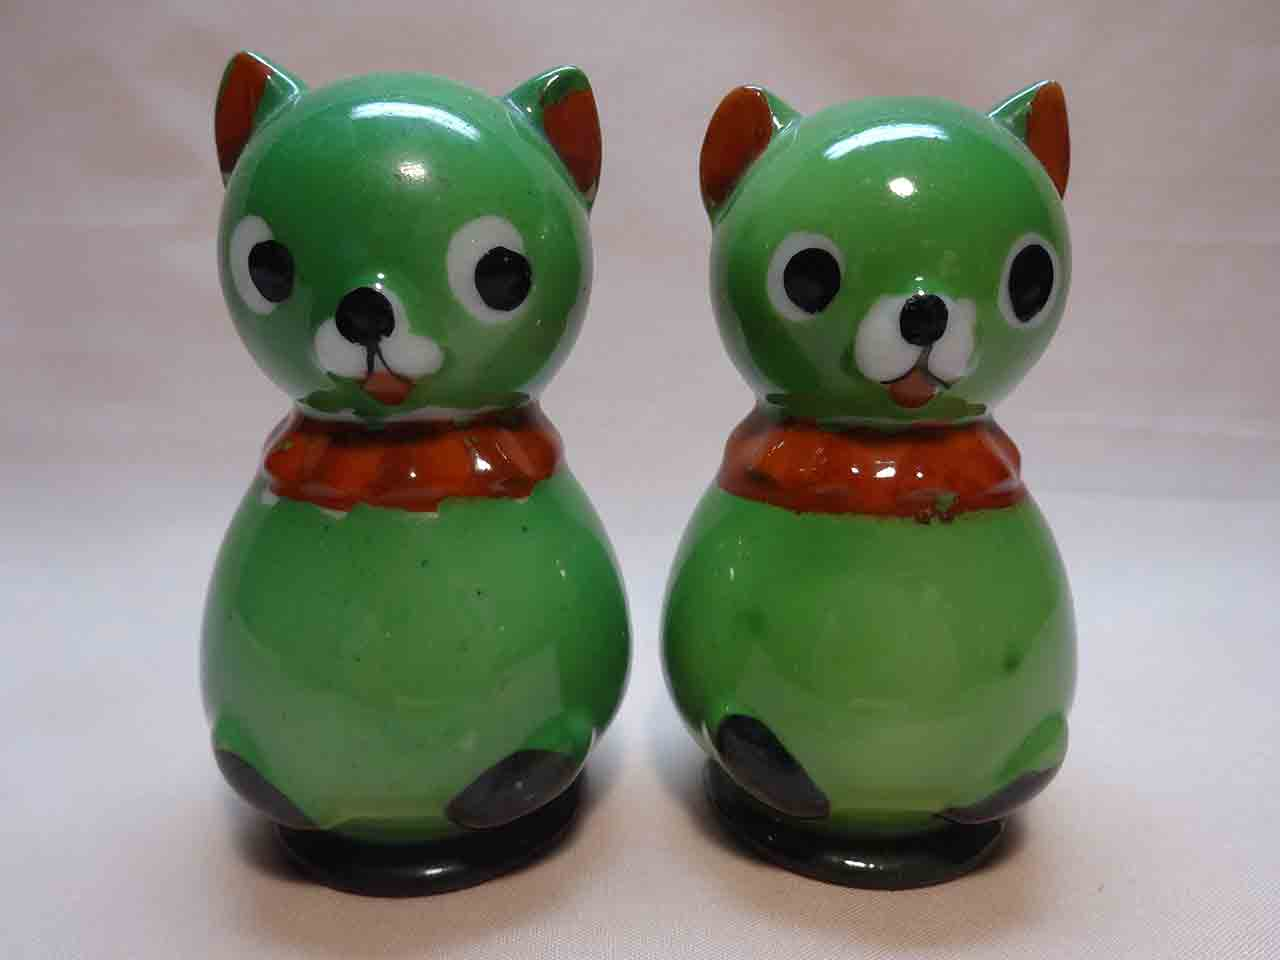 Green cats salt and pepper shakers from Abstract Little People-Like Animals series